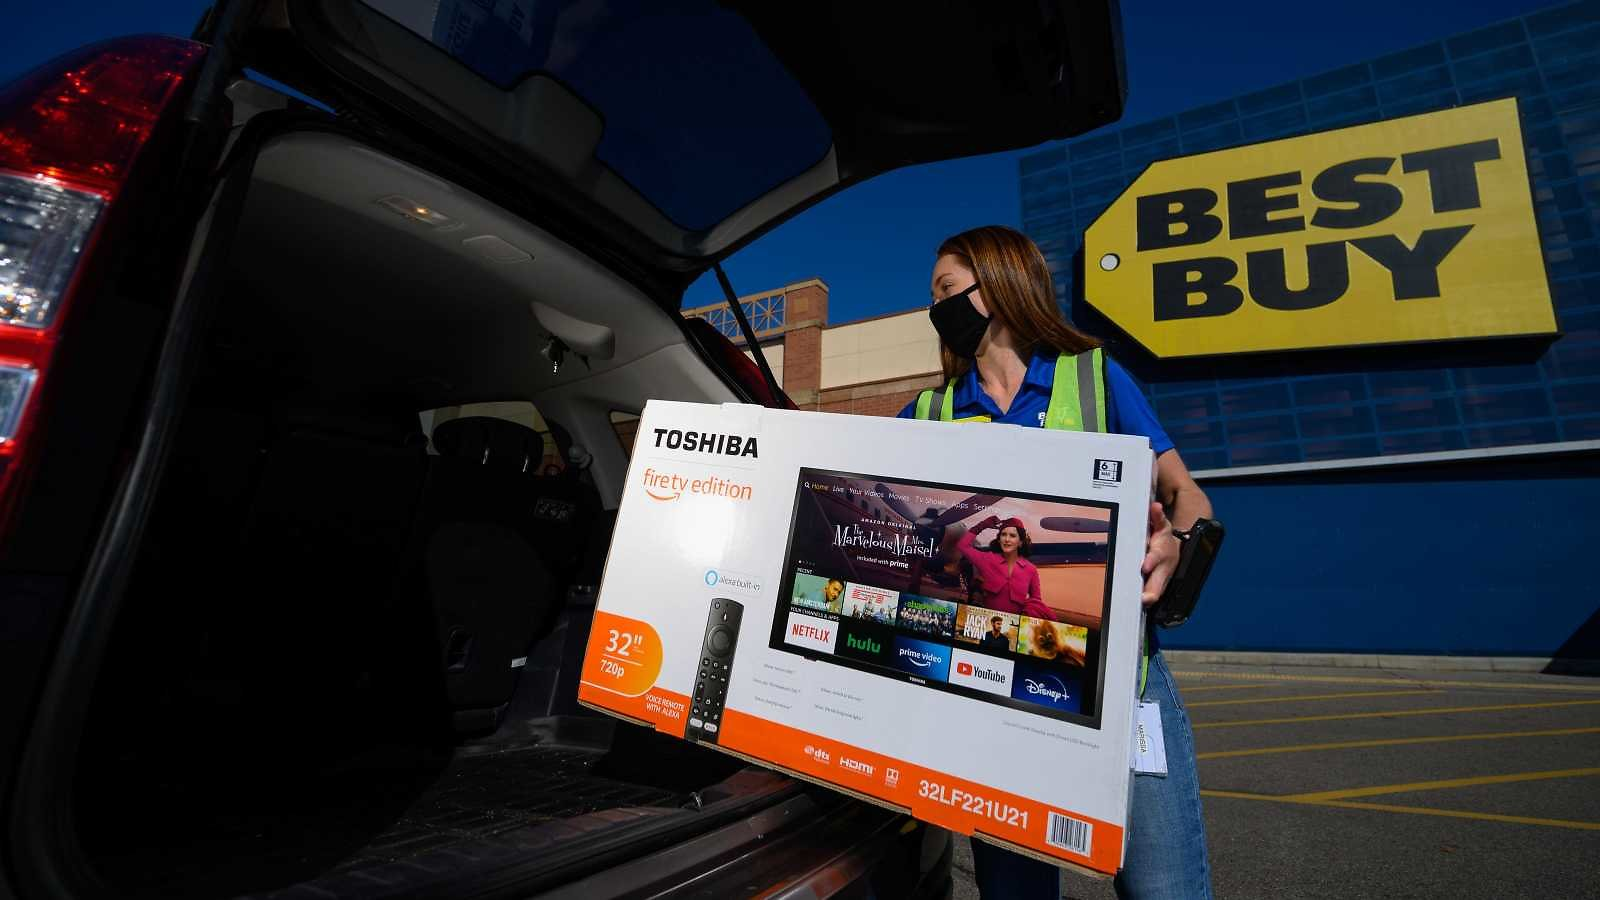 Best Buy Black Friday 2020: Sale Features TV Deals, Laptop and Tech Savings with Some Specials Available Early